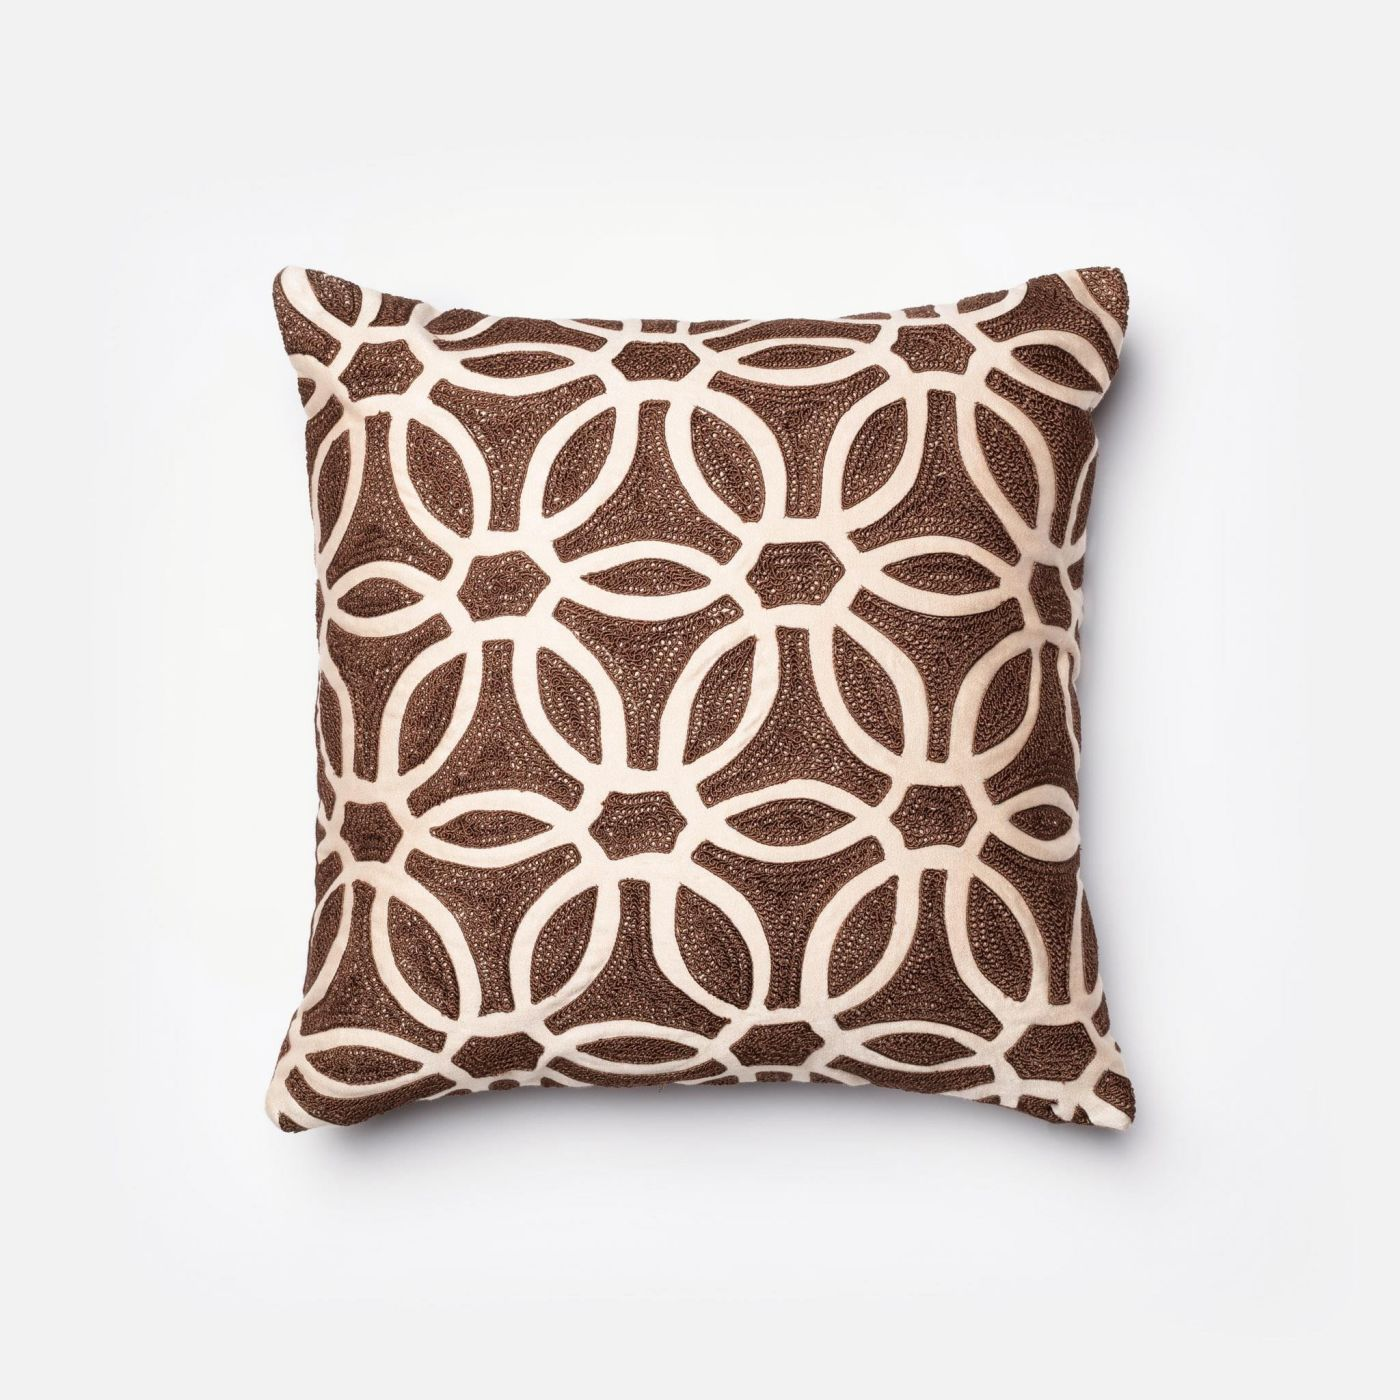 Decorative Pillows Beige : Loloi Rugs Loloi Brown / Beige Decorative Throw Pillow (P0135) DSETP0135BRBEPIL1. Only $99.00 at ...